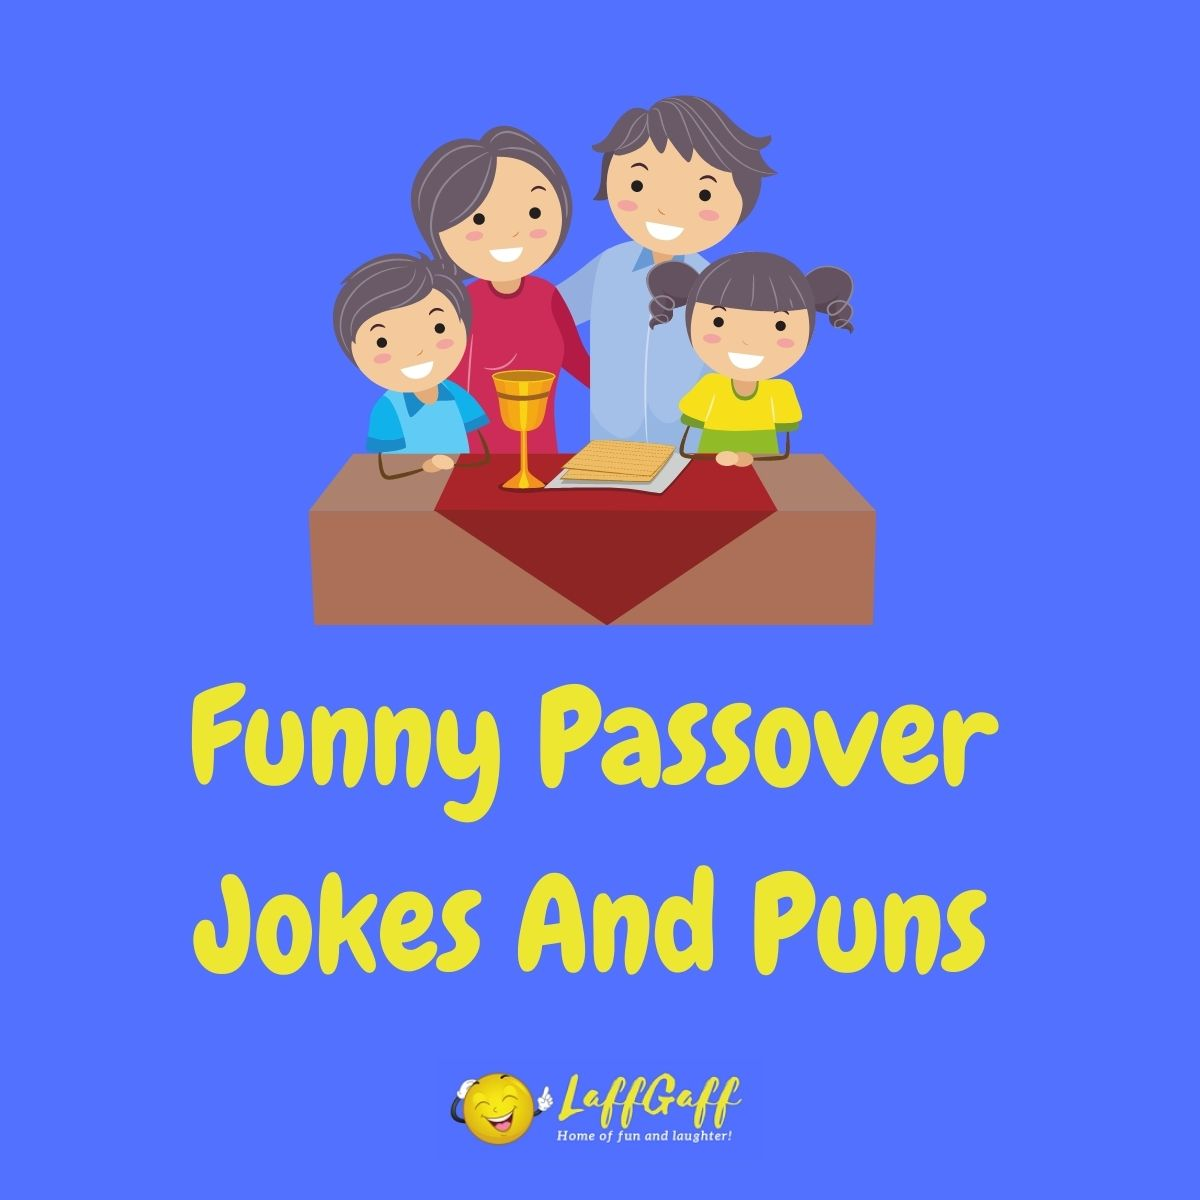 Featured image for a page of funny Passover jokes and puns.